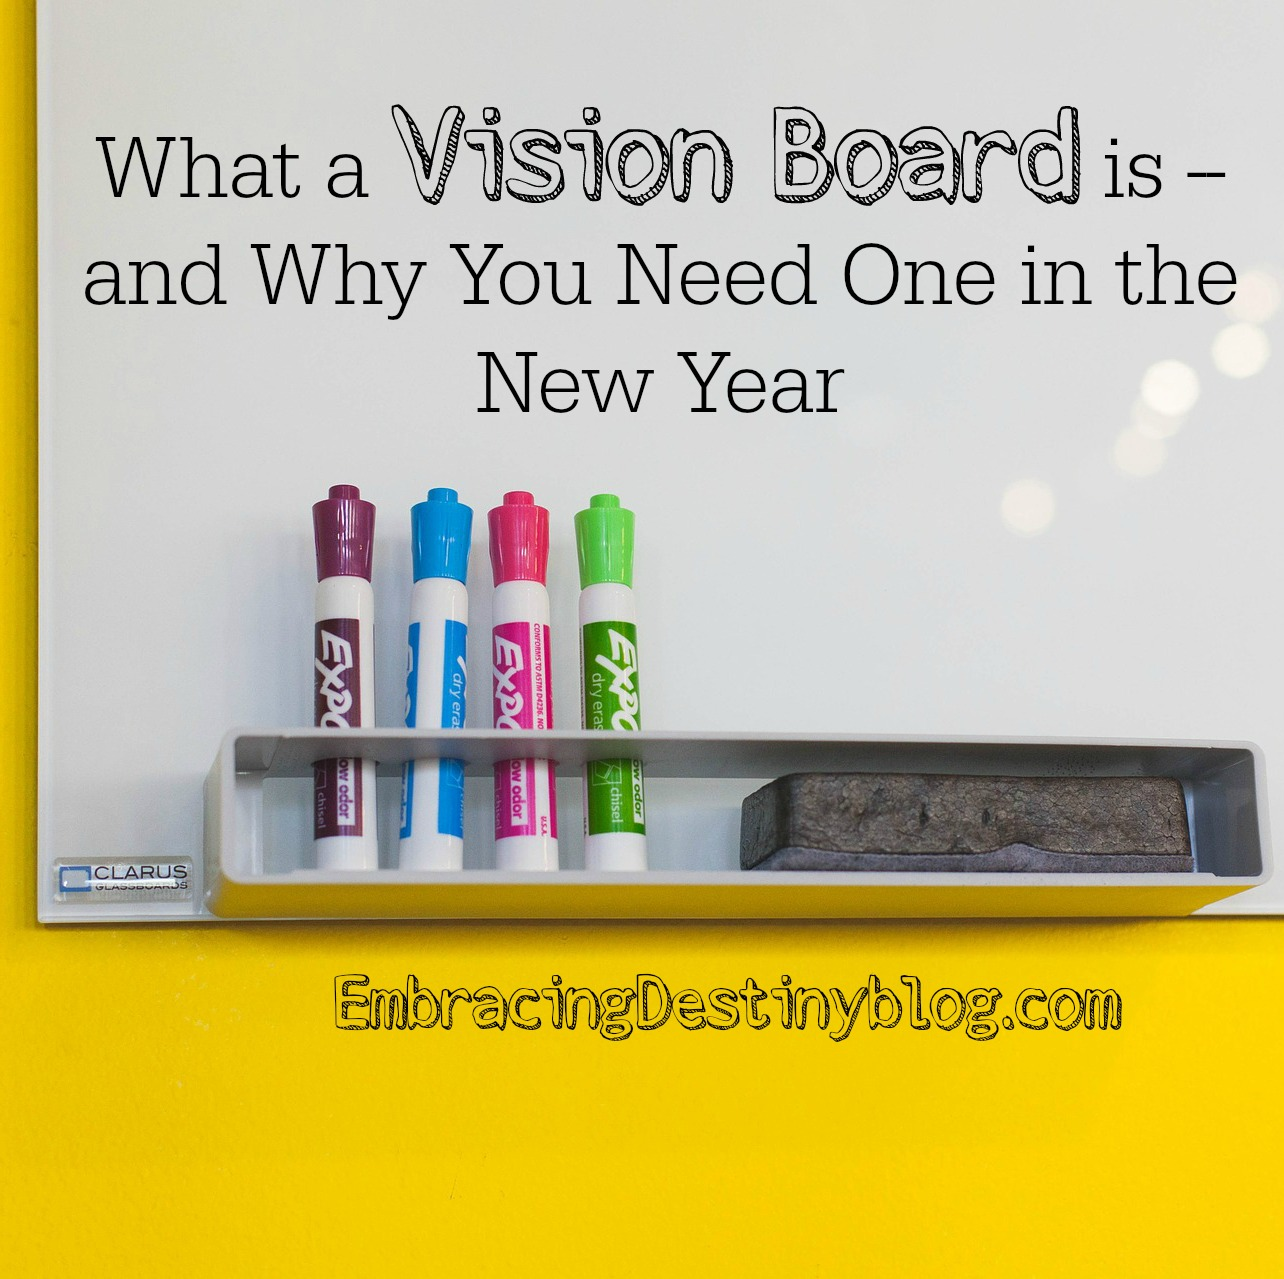 What a Vision Board is -- and why you need one in the new year. Visualize your goals and plans with this display technique. Great motivation all year long! embracingdestinyblog.com